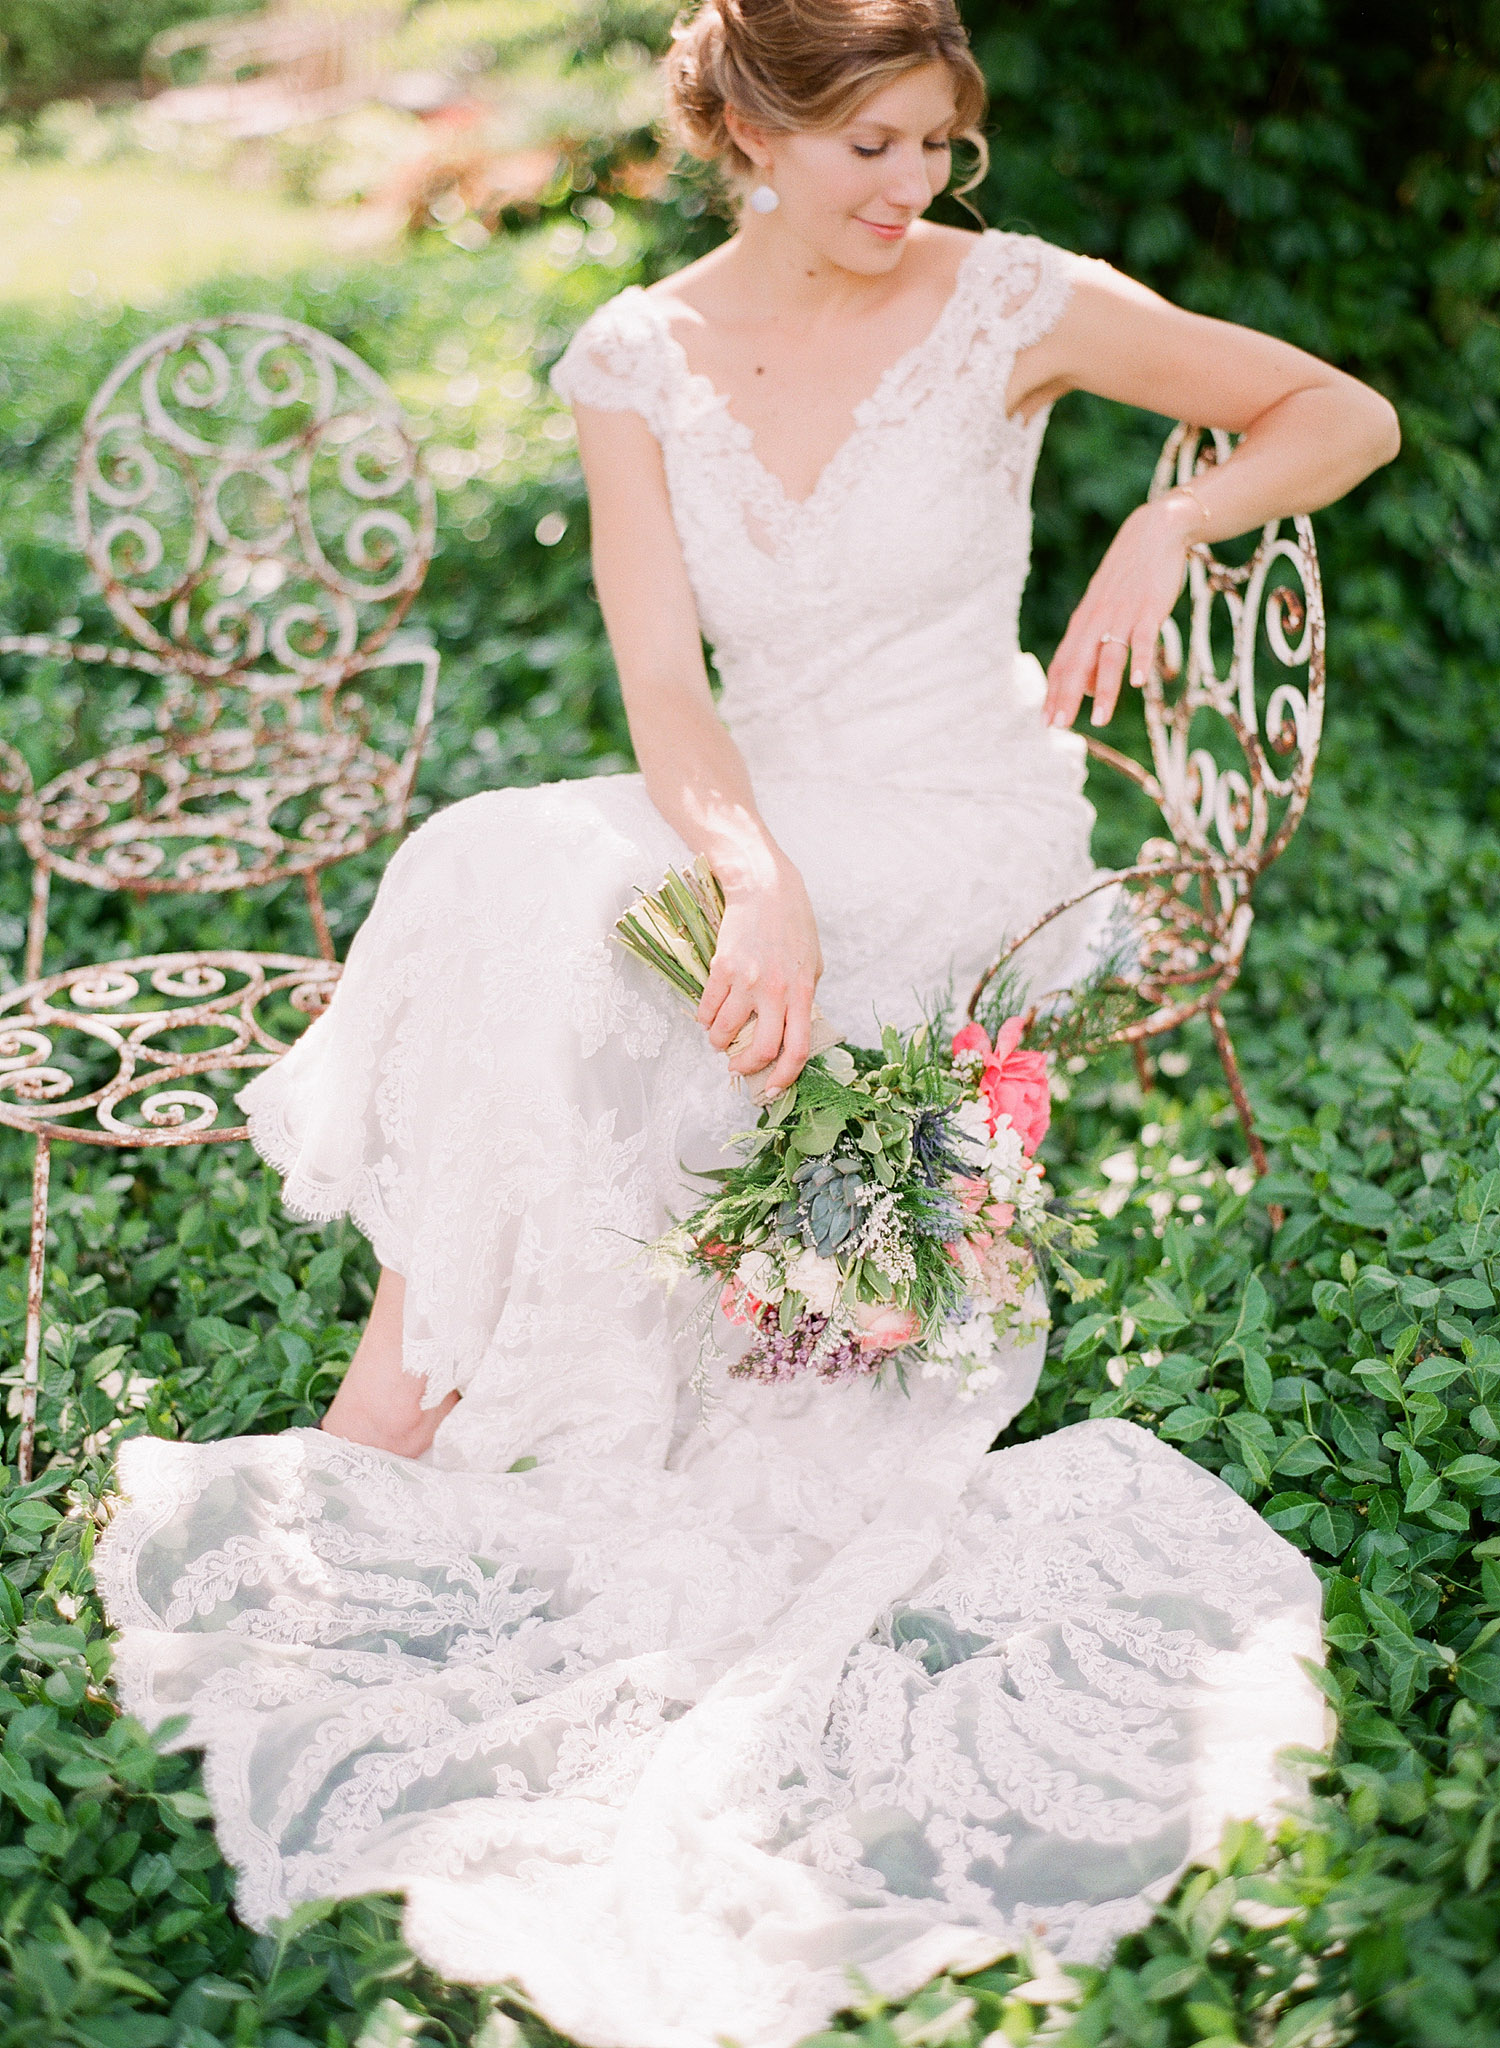 bride sits on vintage wrought iron chair in ivy in her vintage lace wedding dress with cap sleeves holding her asymmetrical spring wedding bouquetat this springtime wedding at Northwind Perennial Garden - a beautiful wisconsin wedding venue - while Destination wedding photographer Lexia Frank Photographs this wedding on film